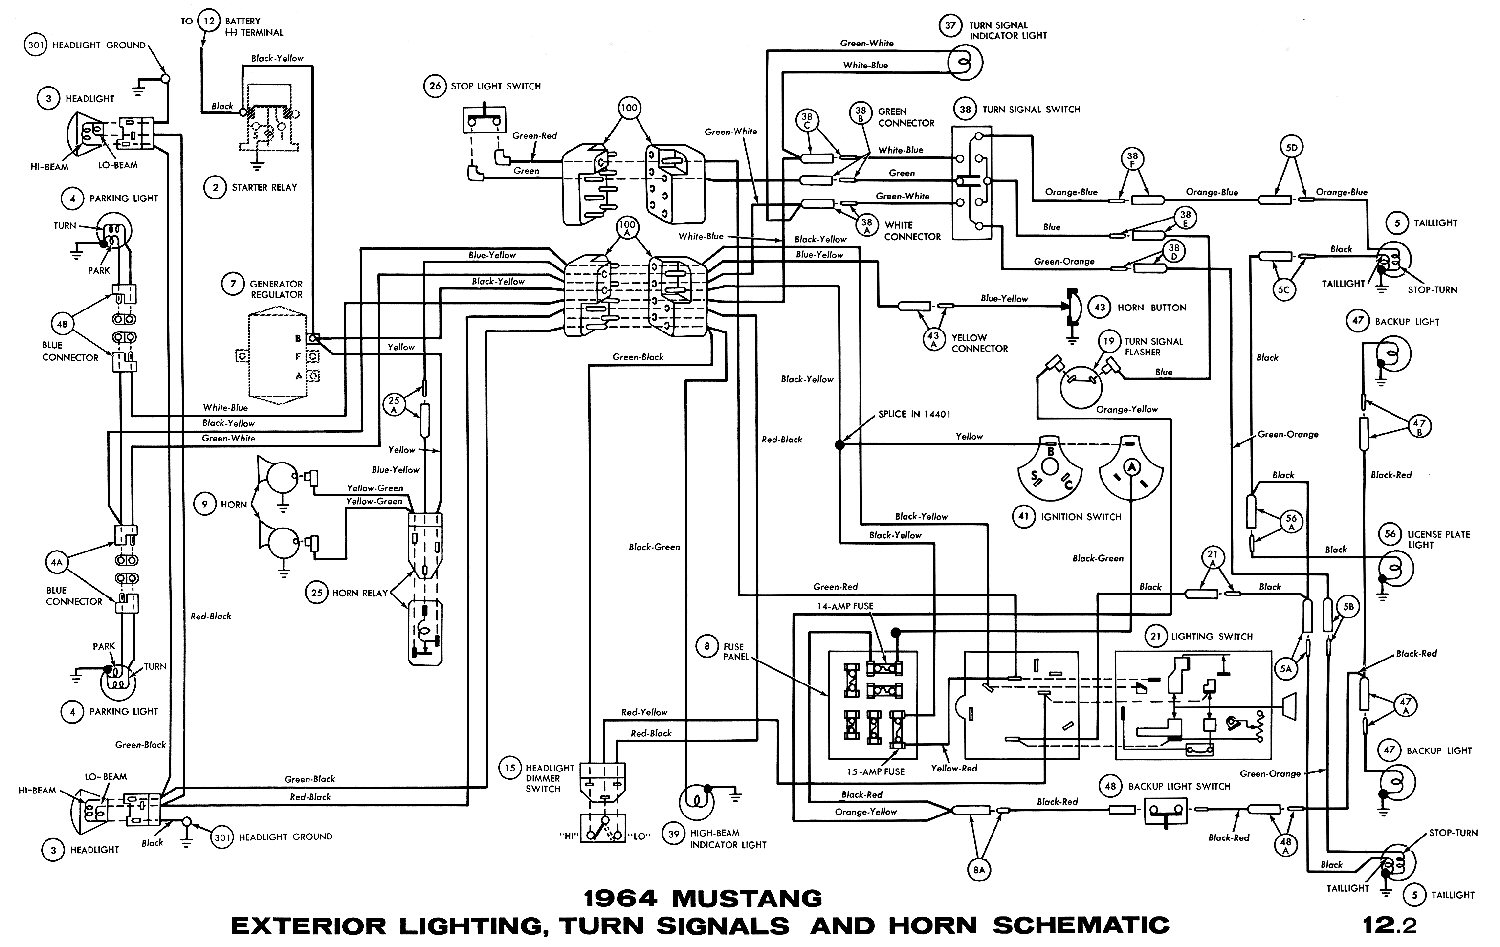 1965 Ford Mustang Wiring | Wiring Diagram  Mustang Wiring Schematic Charging Circuit on 1971 mustang wiring schematic, 2001 mustang wiring schematic, 1965 mustang steering schematic, 1964 mustang wiring schematic, 2005 mustang wiring schematic, 1967 mustang wiring schematic, 1968 mustang wiring schematic, 1957 chevrolet truck wiring schematic, 1967 gto wiring schematic, 2000 mustang wiring schematic, ford wiring schematic, 2006 mustang wiring schematic, 1967 camaro wiring schematic, 1966 mustang wiring schematic, 1970 mustang wiring schematic, 2008 mustang wiring schematic, 66 mustang wiring schematic, 65 mustang wiring schematic, 1969 camaro wiring schematic, 2002 mustang wiring schematic,